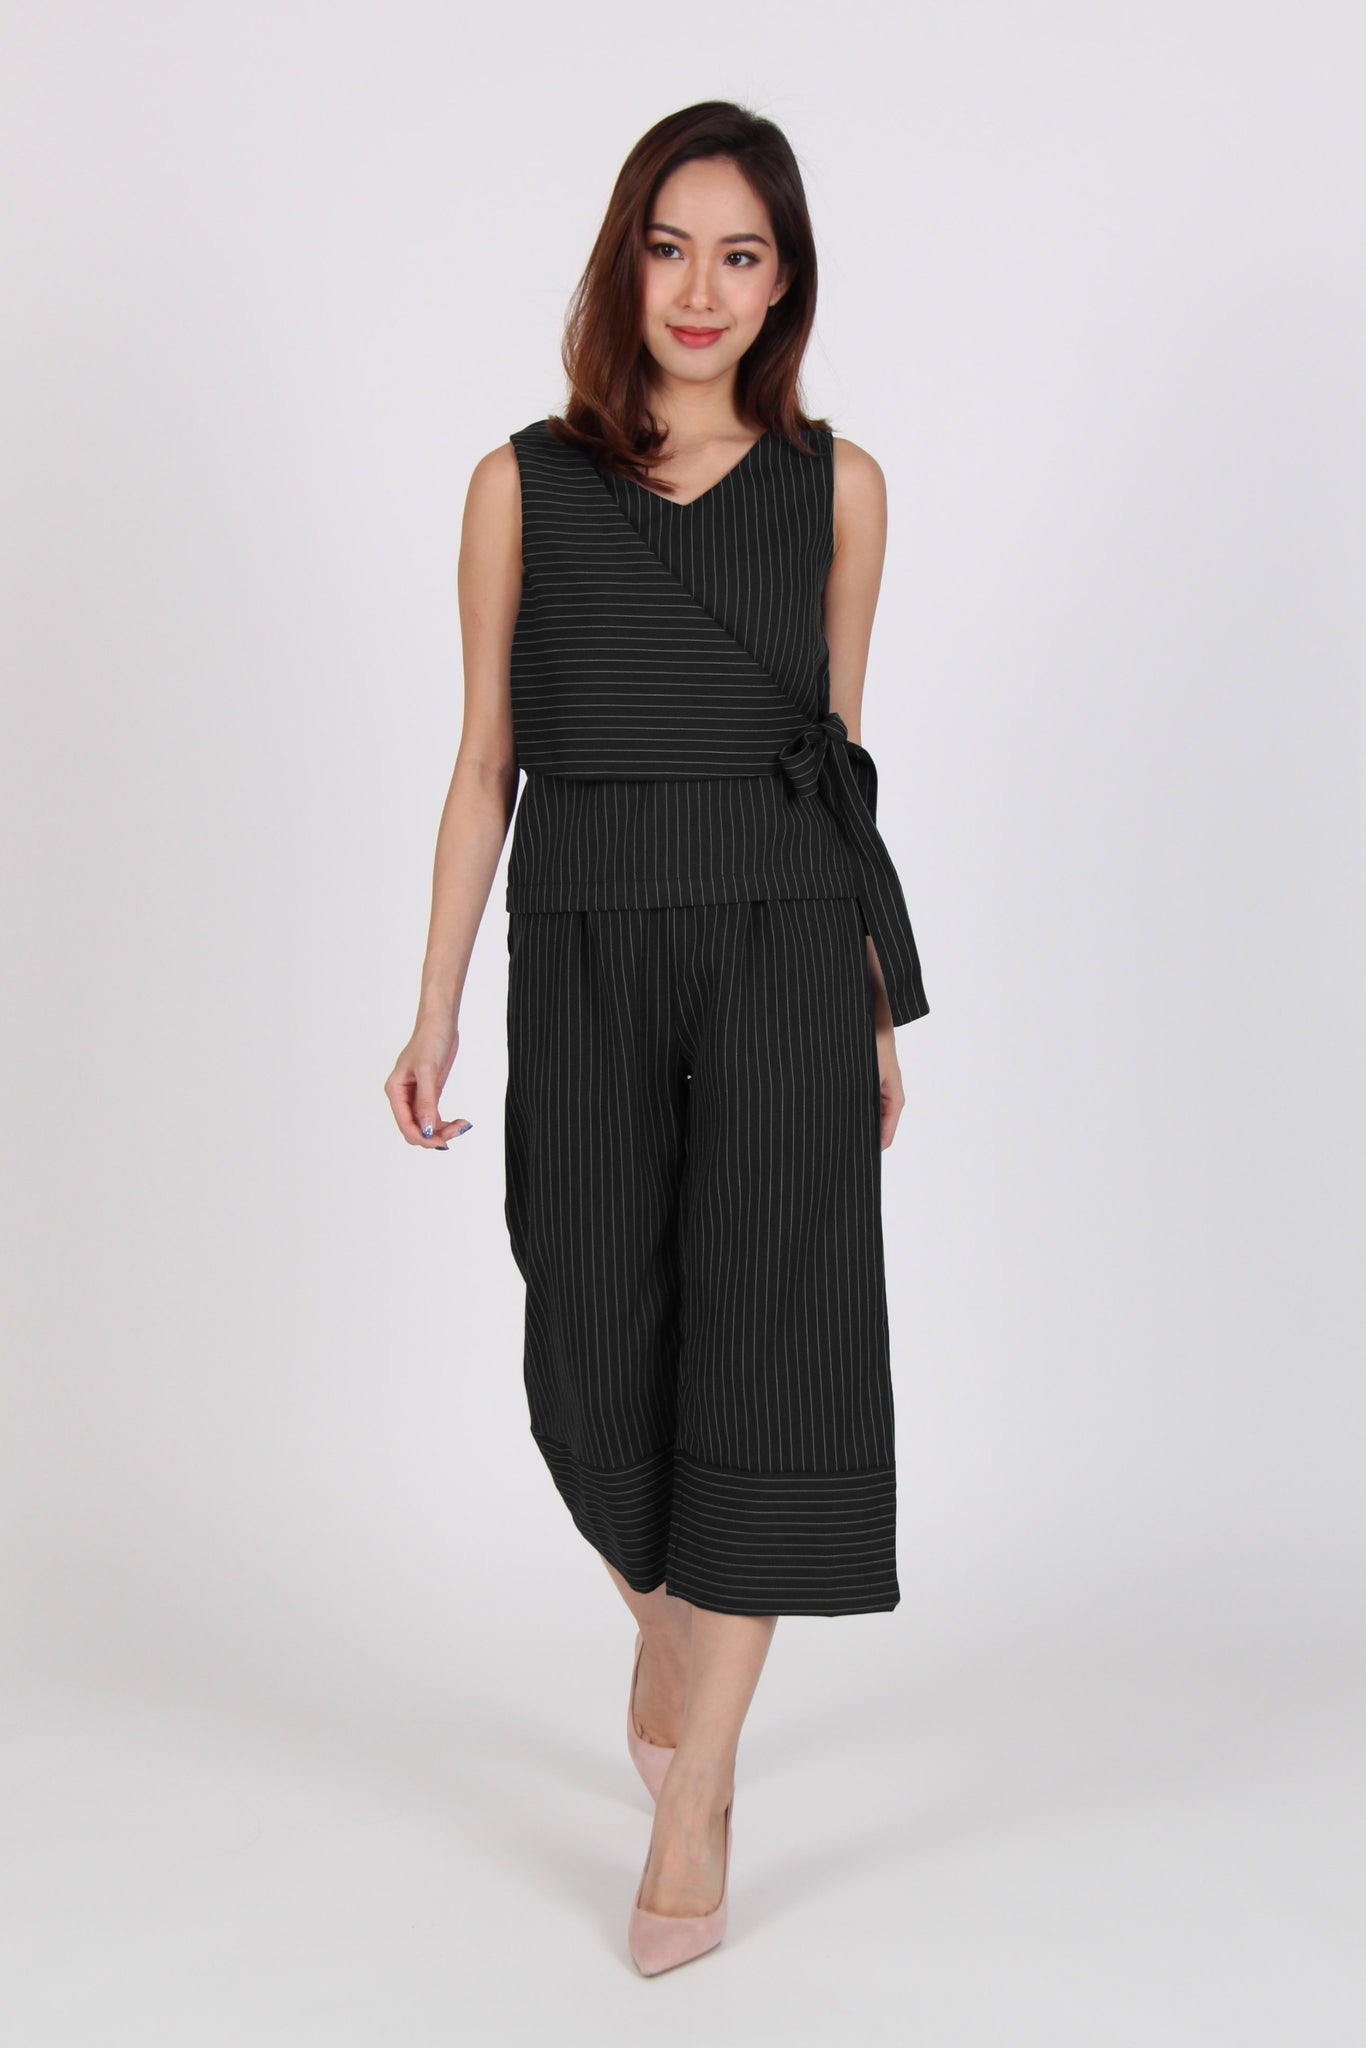 2 Piece Pinstripe Side Overlap Top with Culottes in Black